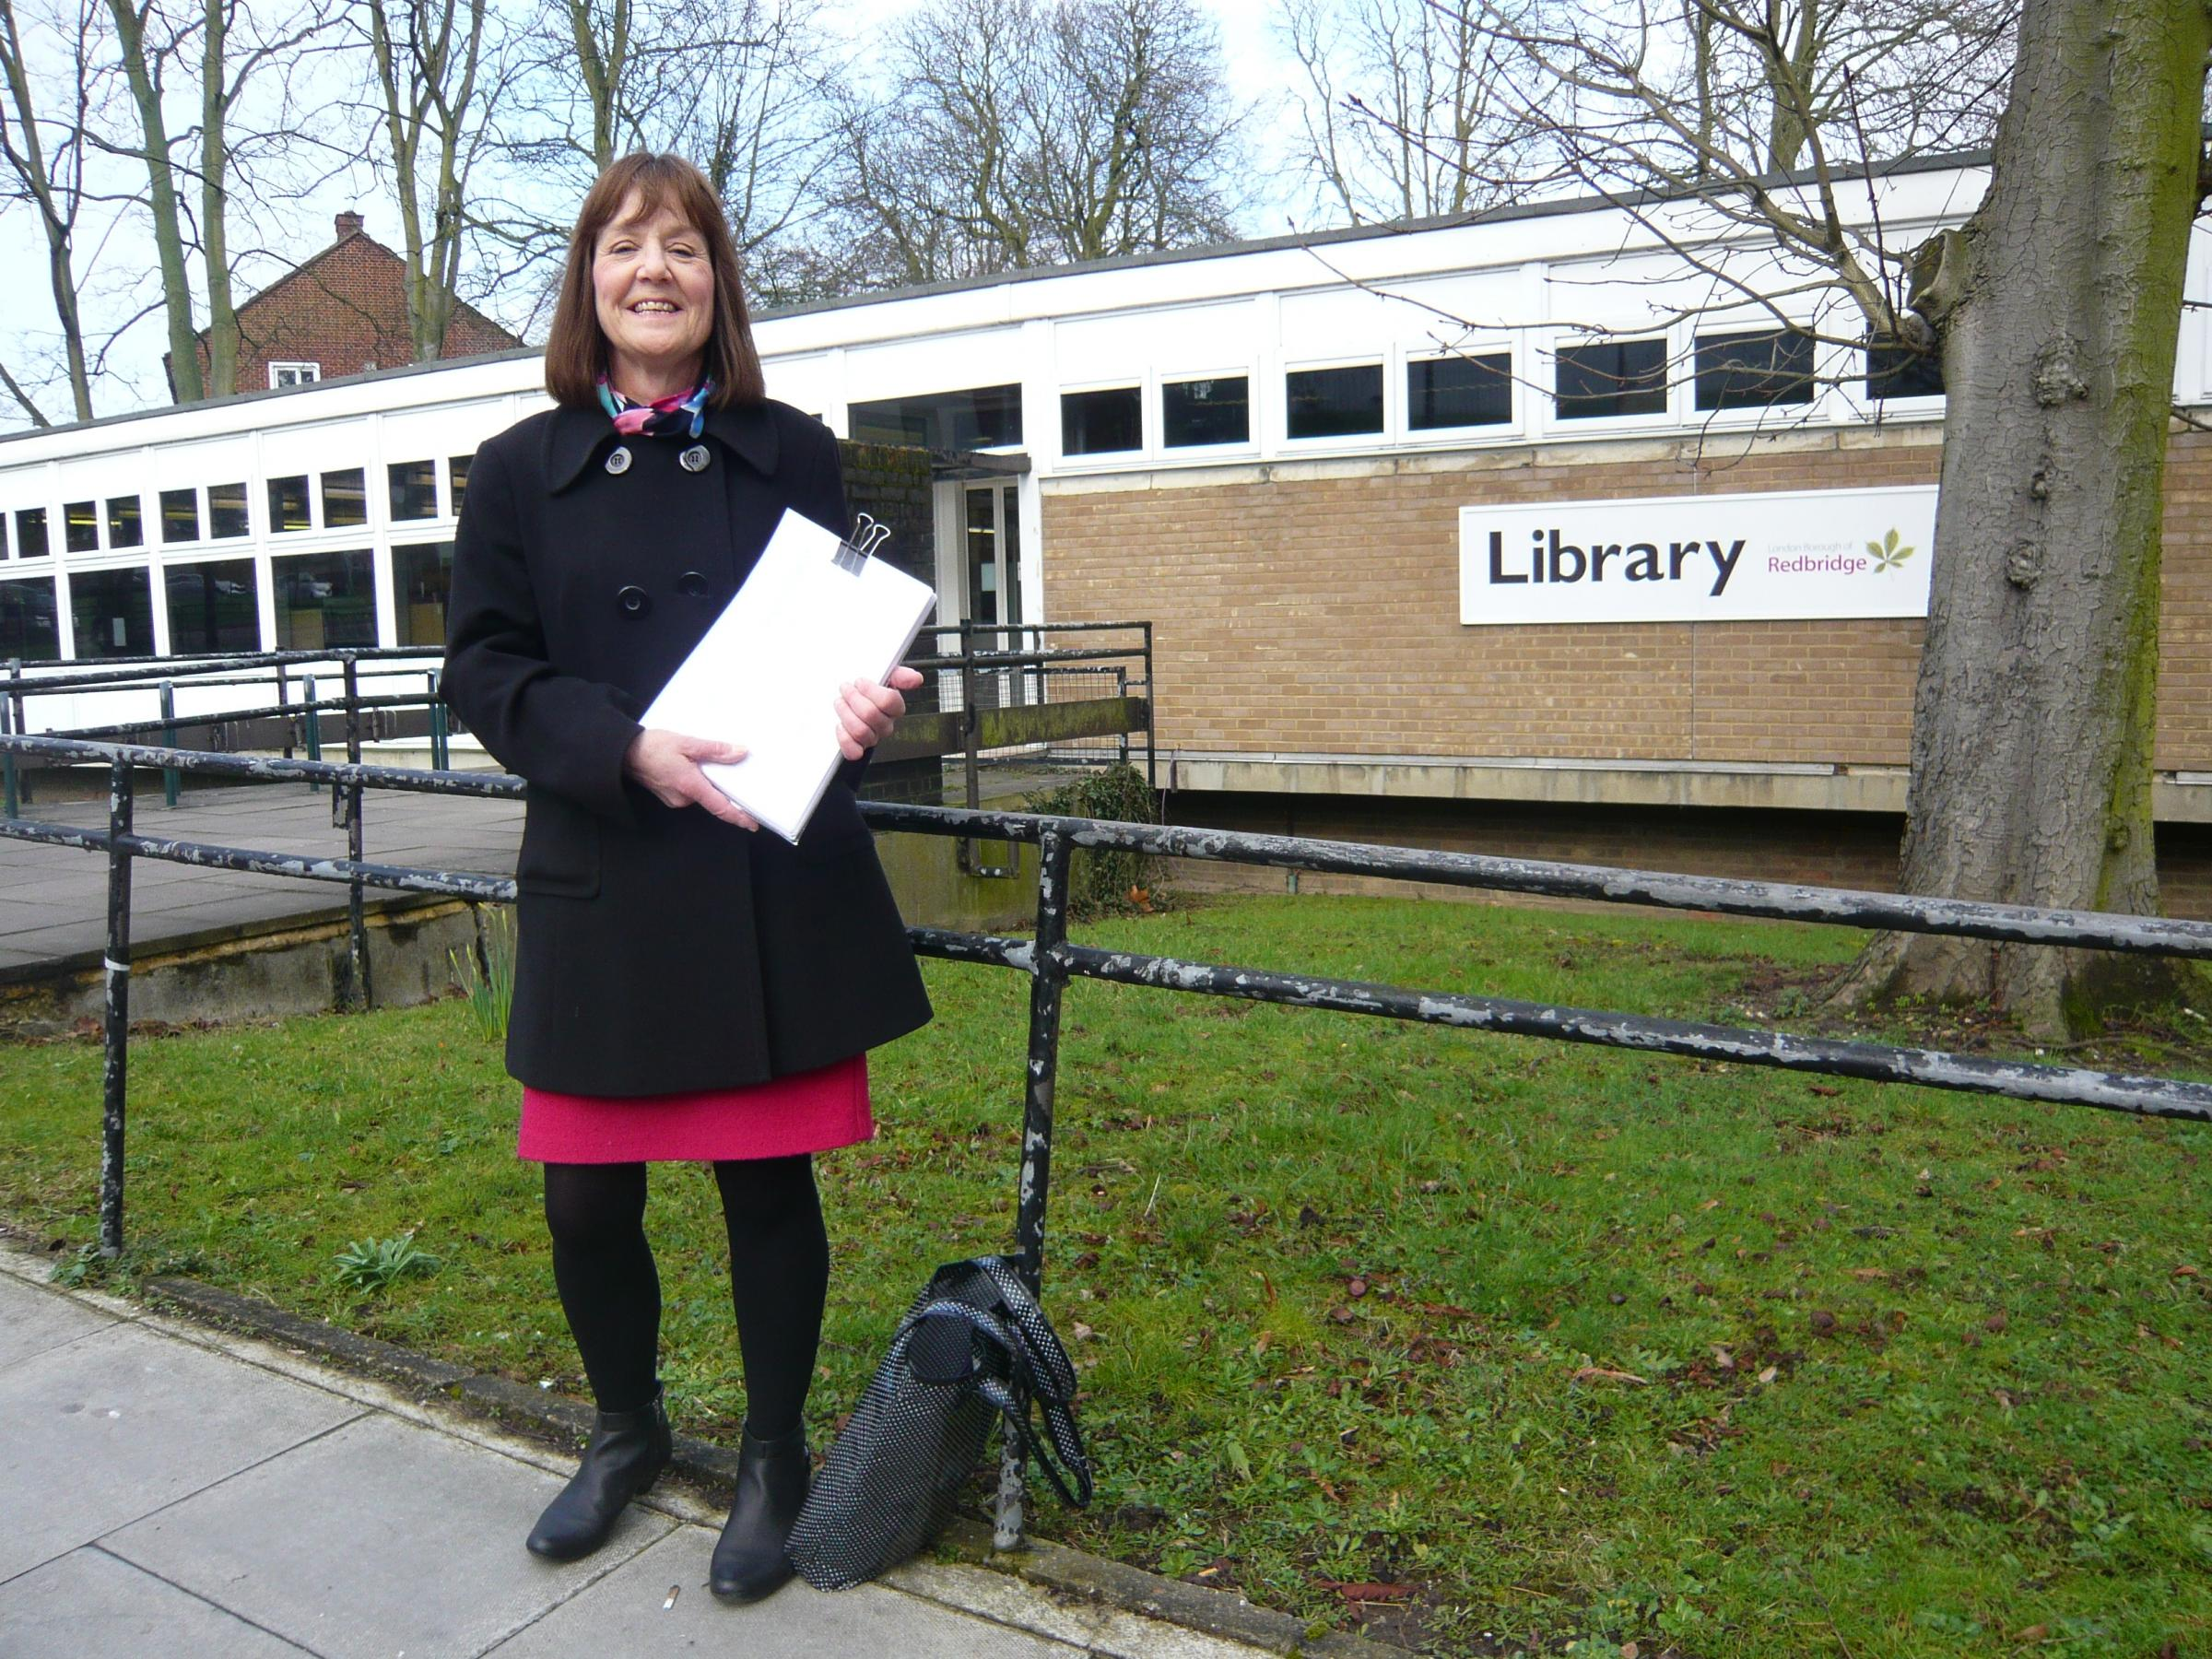 Anne Crook will hand over a petition of 550 signatures against the proposed move of Woodford Green Library